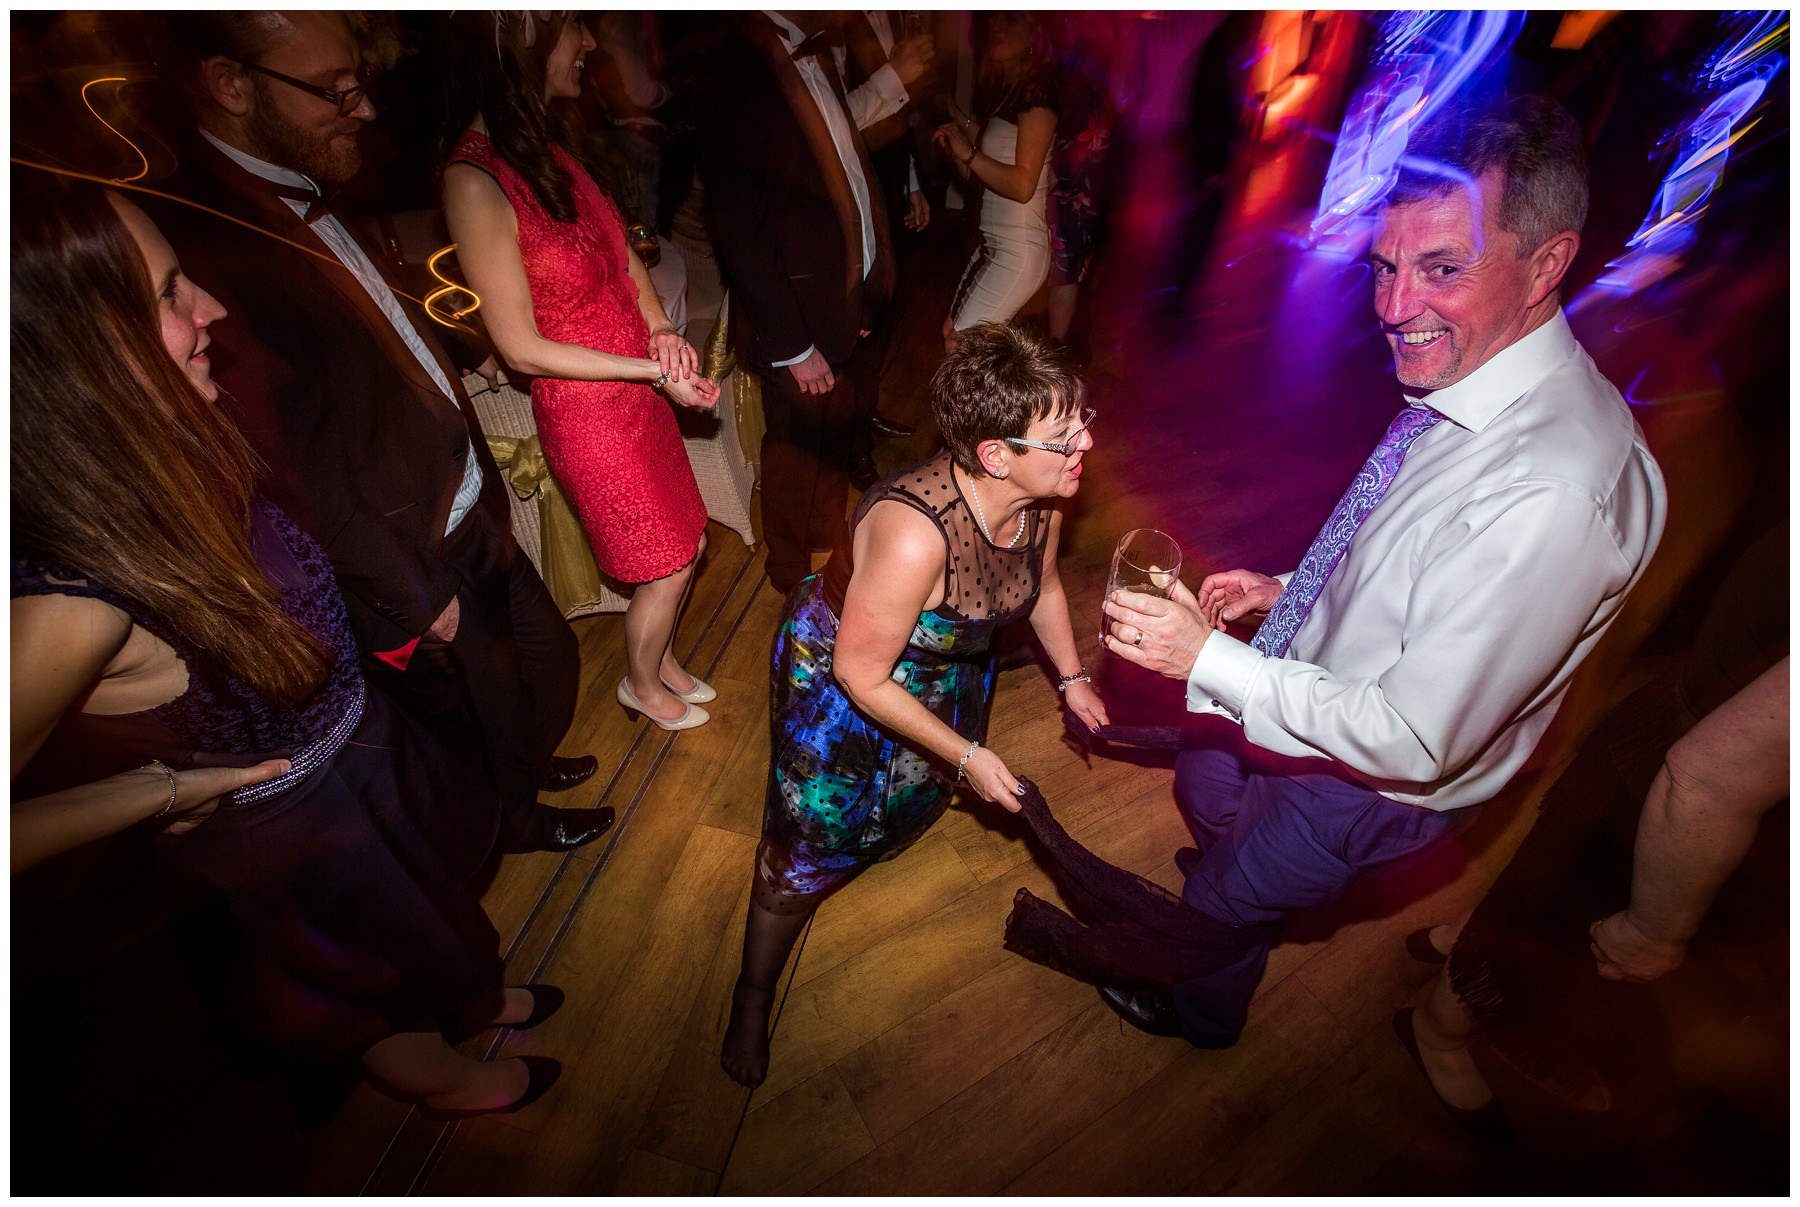 brides mum about to slip while doing the splits on the dance floor